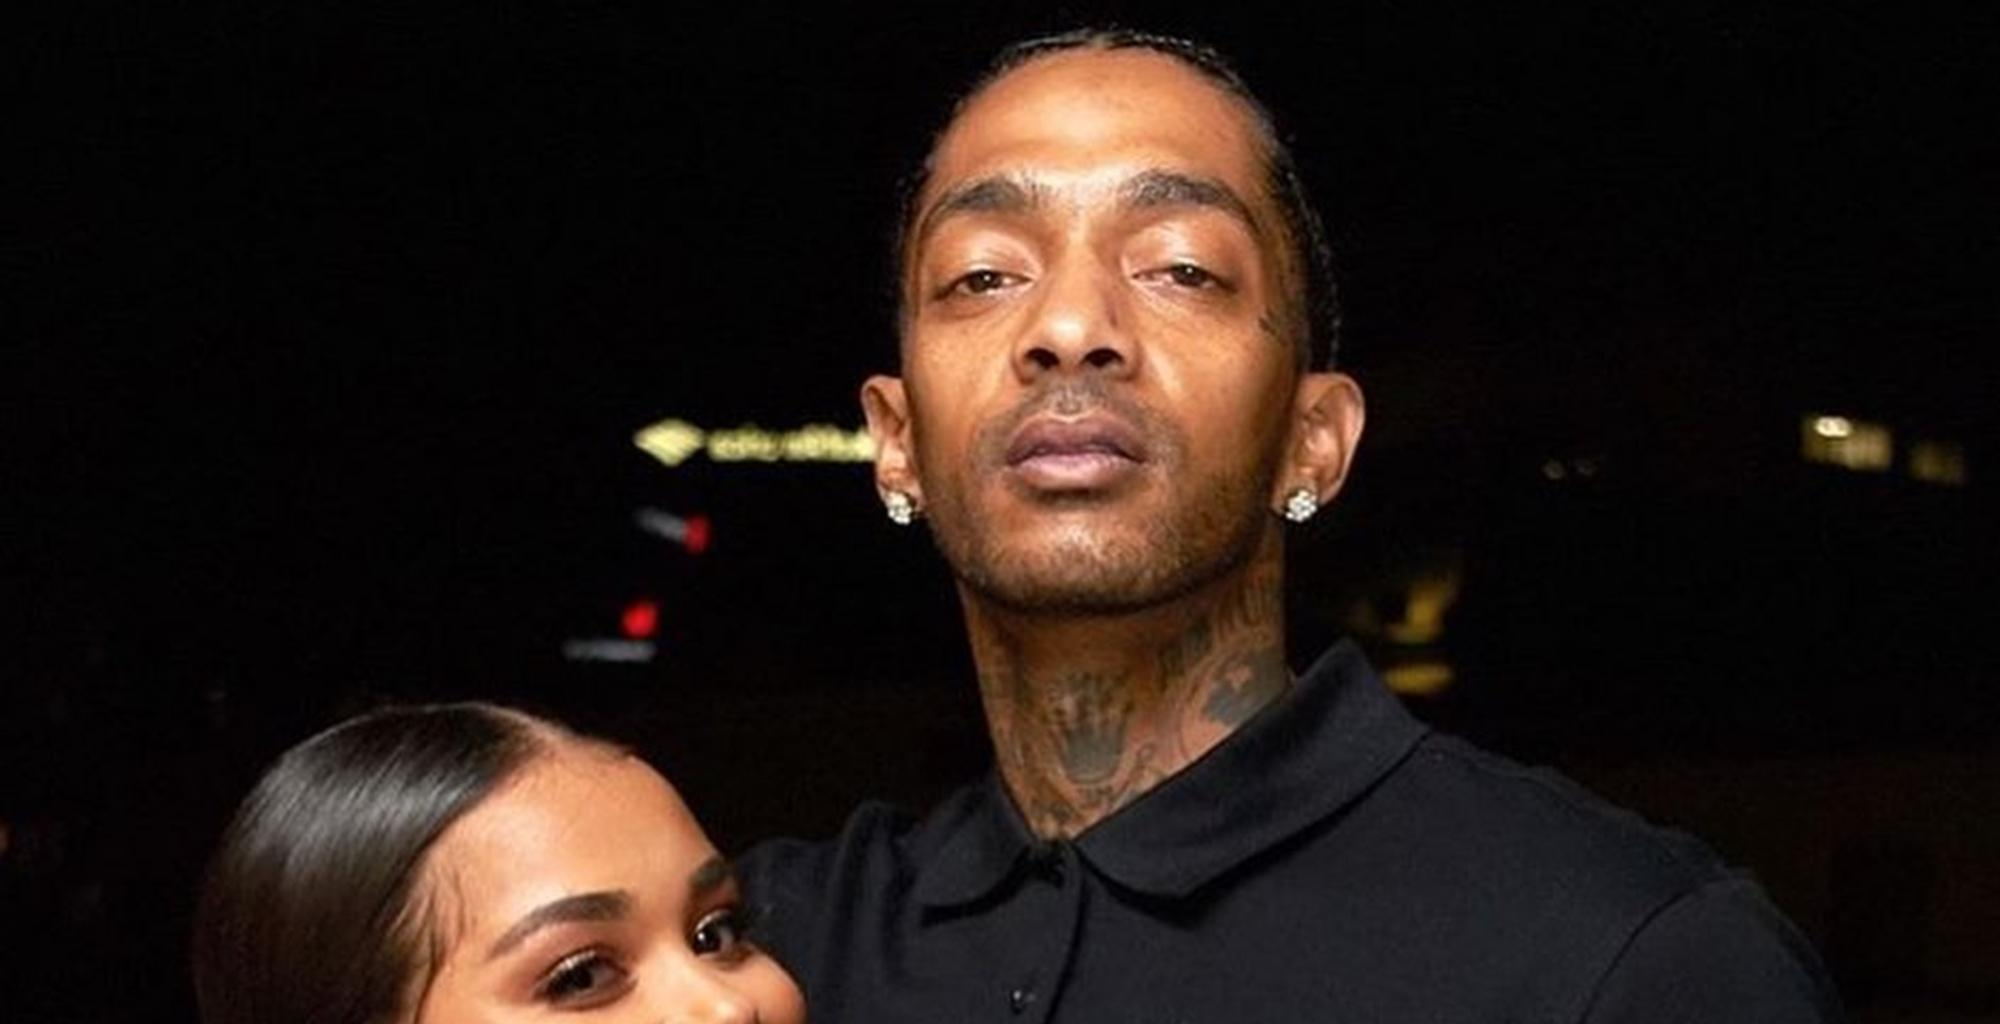 Lauren London Has The Look Of Love In Rare Pictures With Nipsey Hussle, As She Reveals How God Is Helping Her Through This Pain